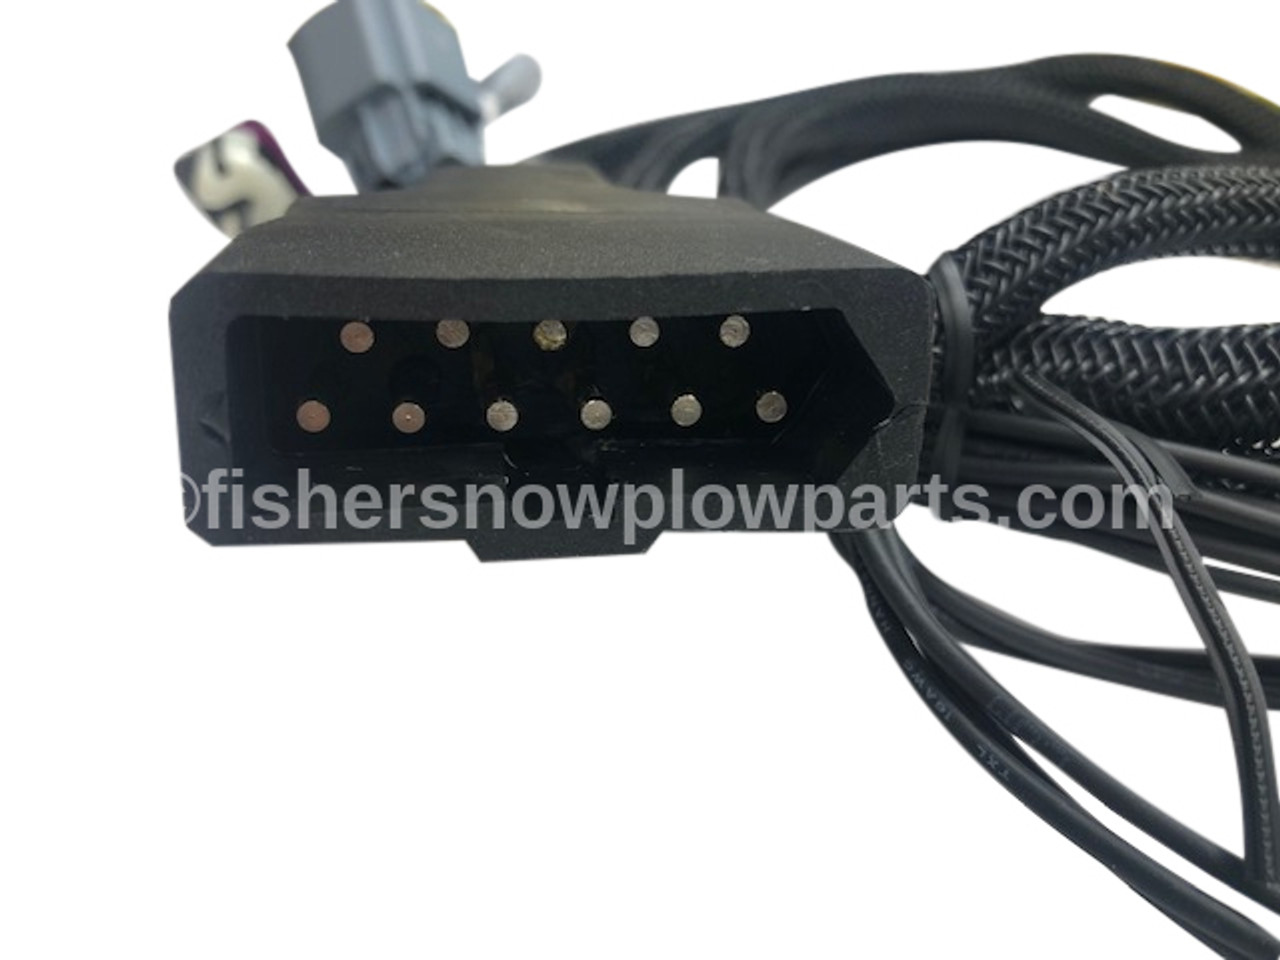 28213K - FISHER SNOW PLOWS GENUINE REPLACEMENT PART -  HARNESS KIT PLOW LIGHTING H13